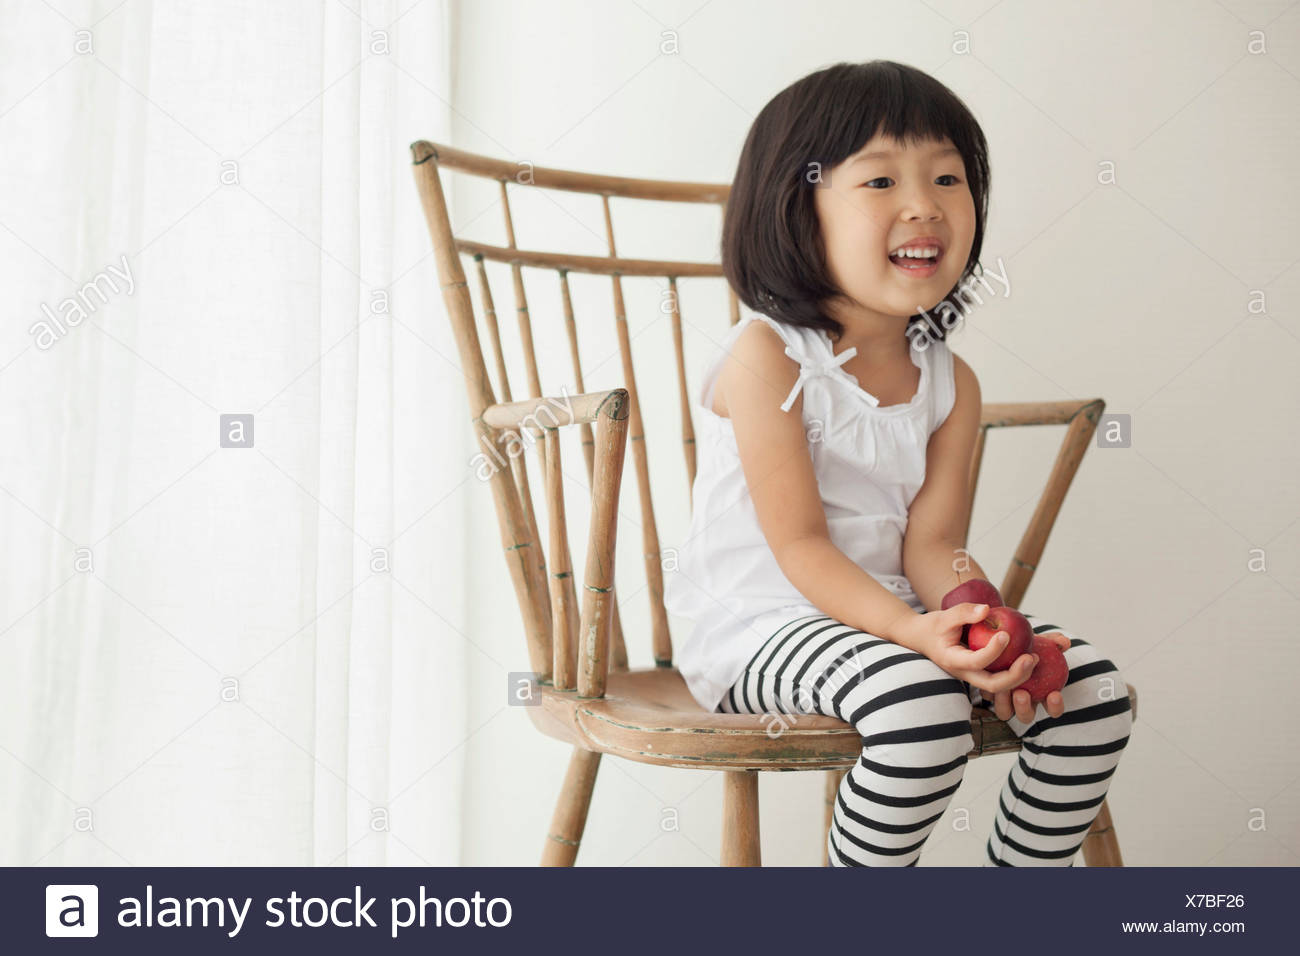 Girl sitting on wooden chair, portrait - Stock Image